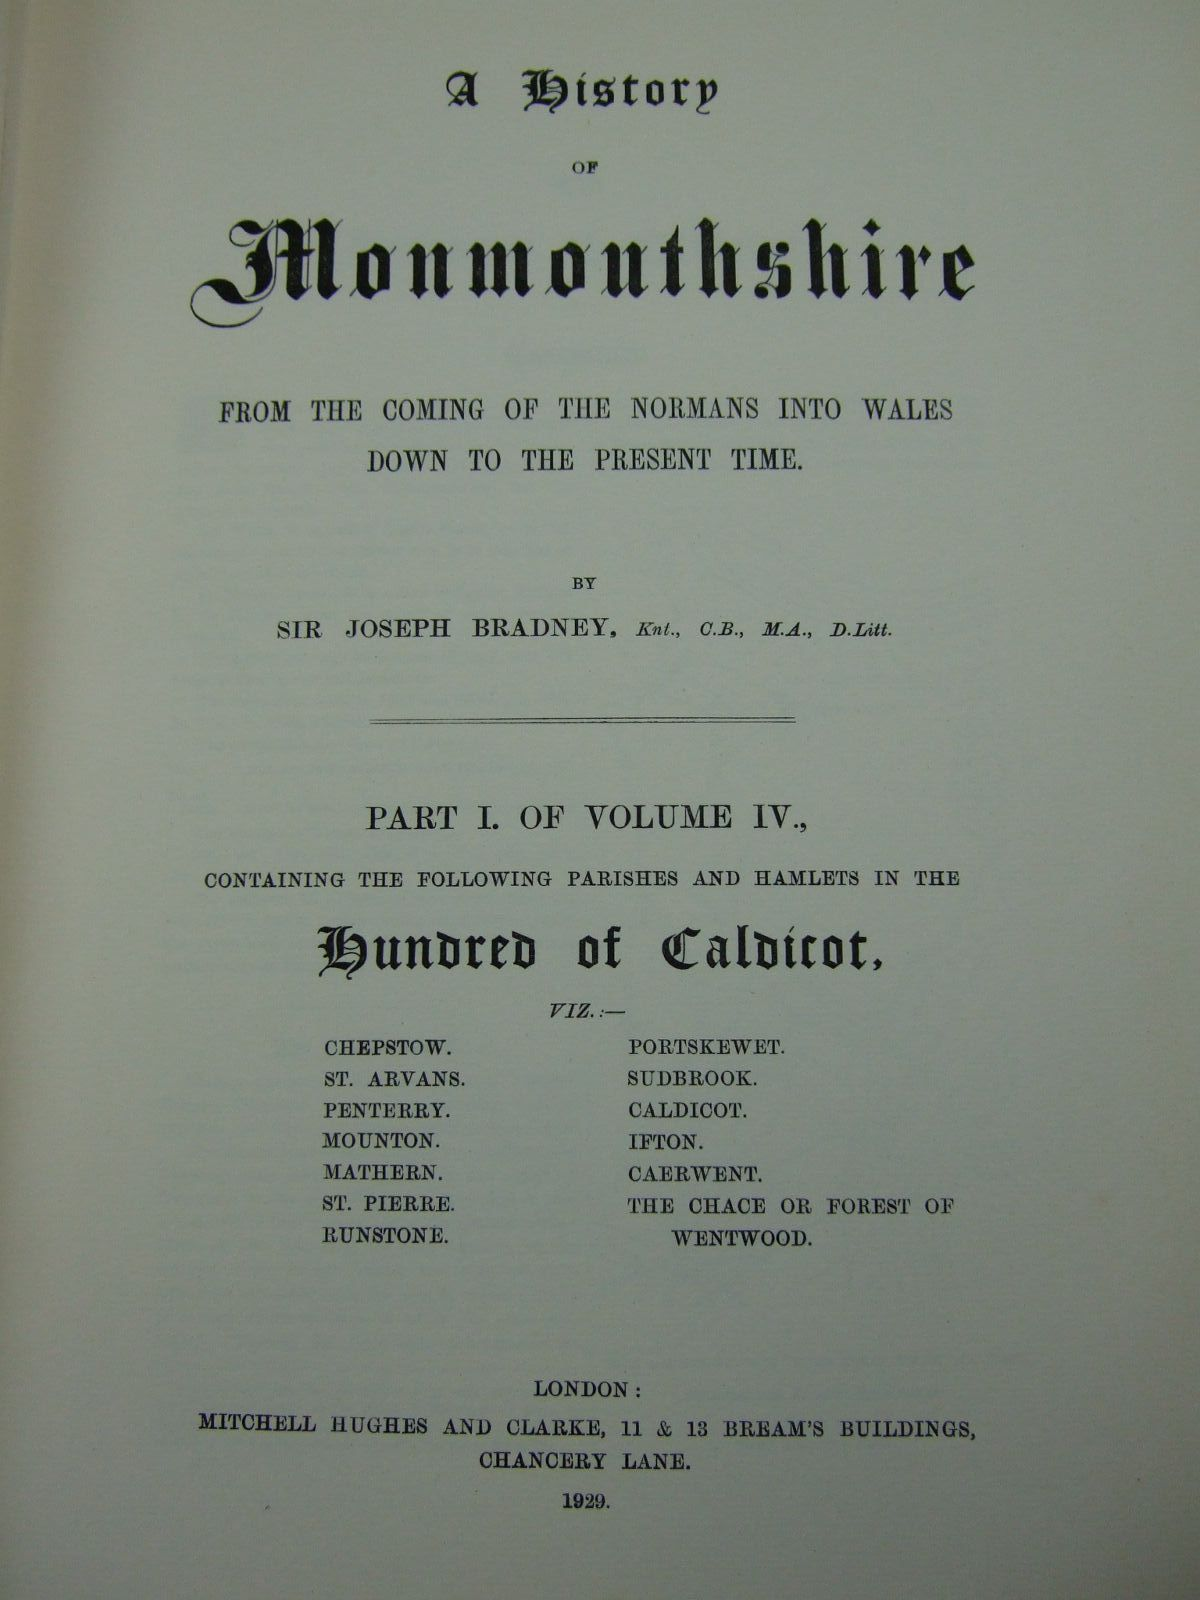 Photo of A HISTORY OF MONMOUTHSHIRE HUNDRED OF CALDICOT (PART I OF VOLUME IV) written by Bradney, Joseph published by Mitchell Hughes and Clarke (STOCK CODE: 2109437)  for sale by Stella & Rose's Books